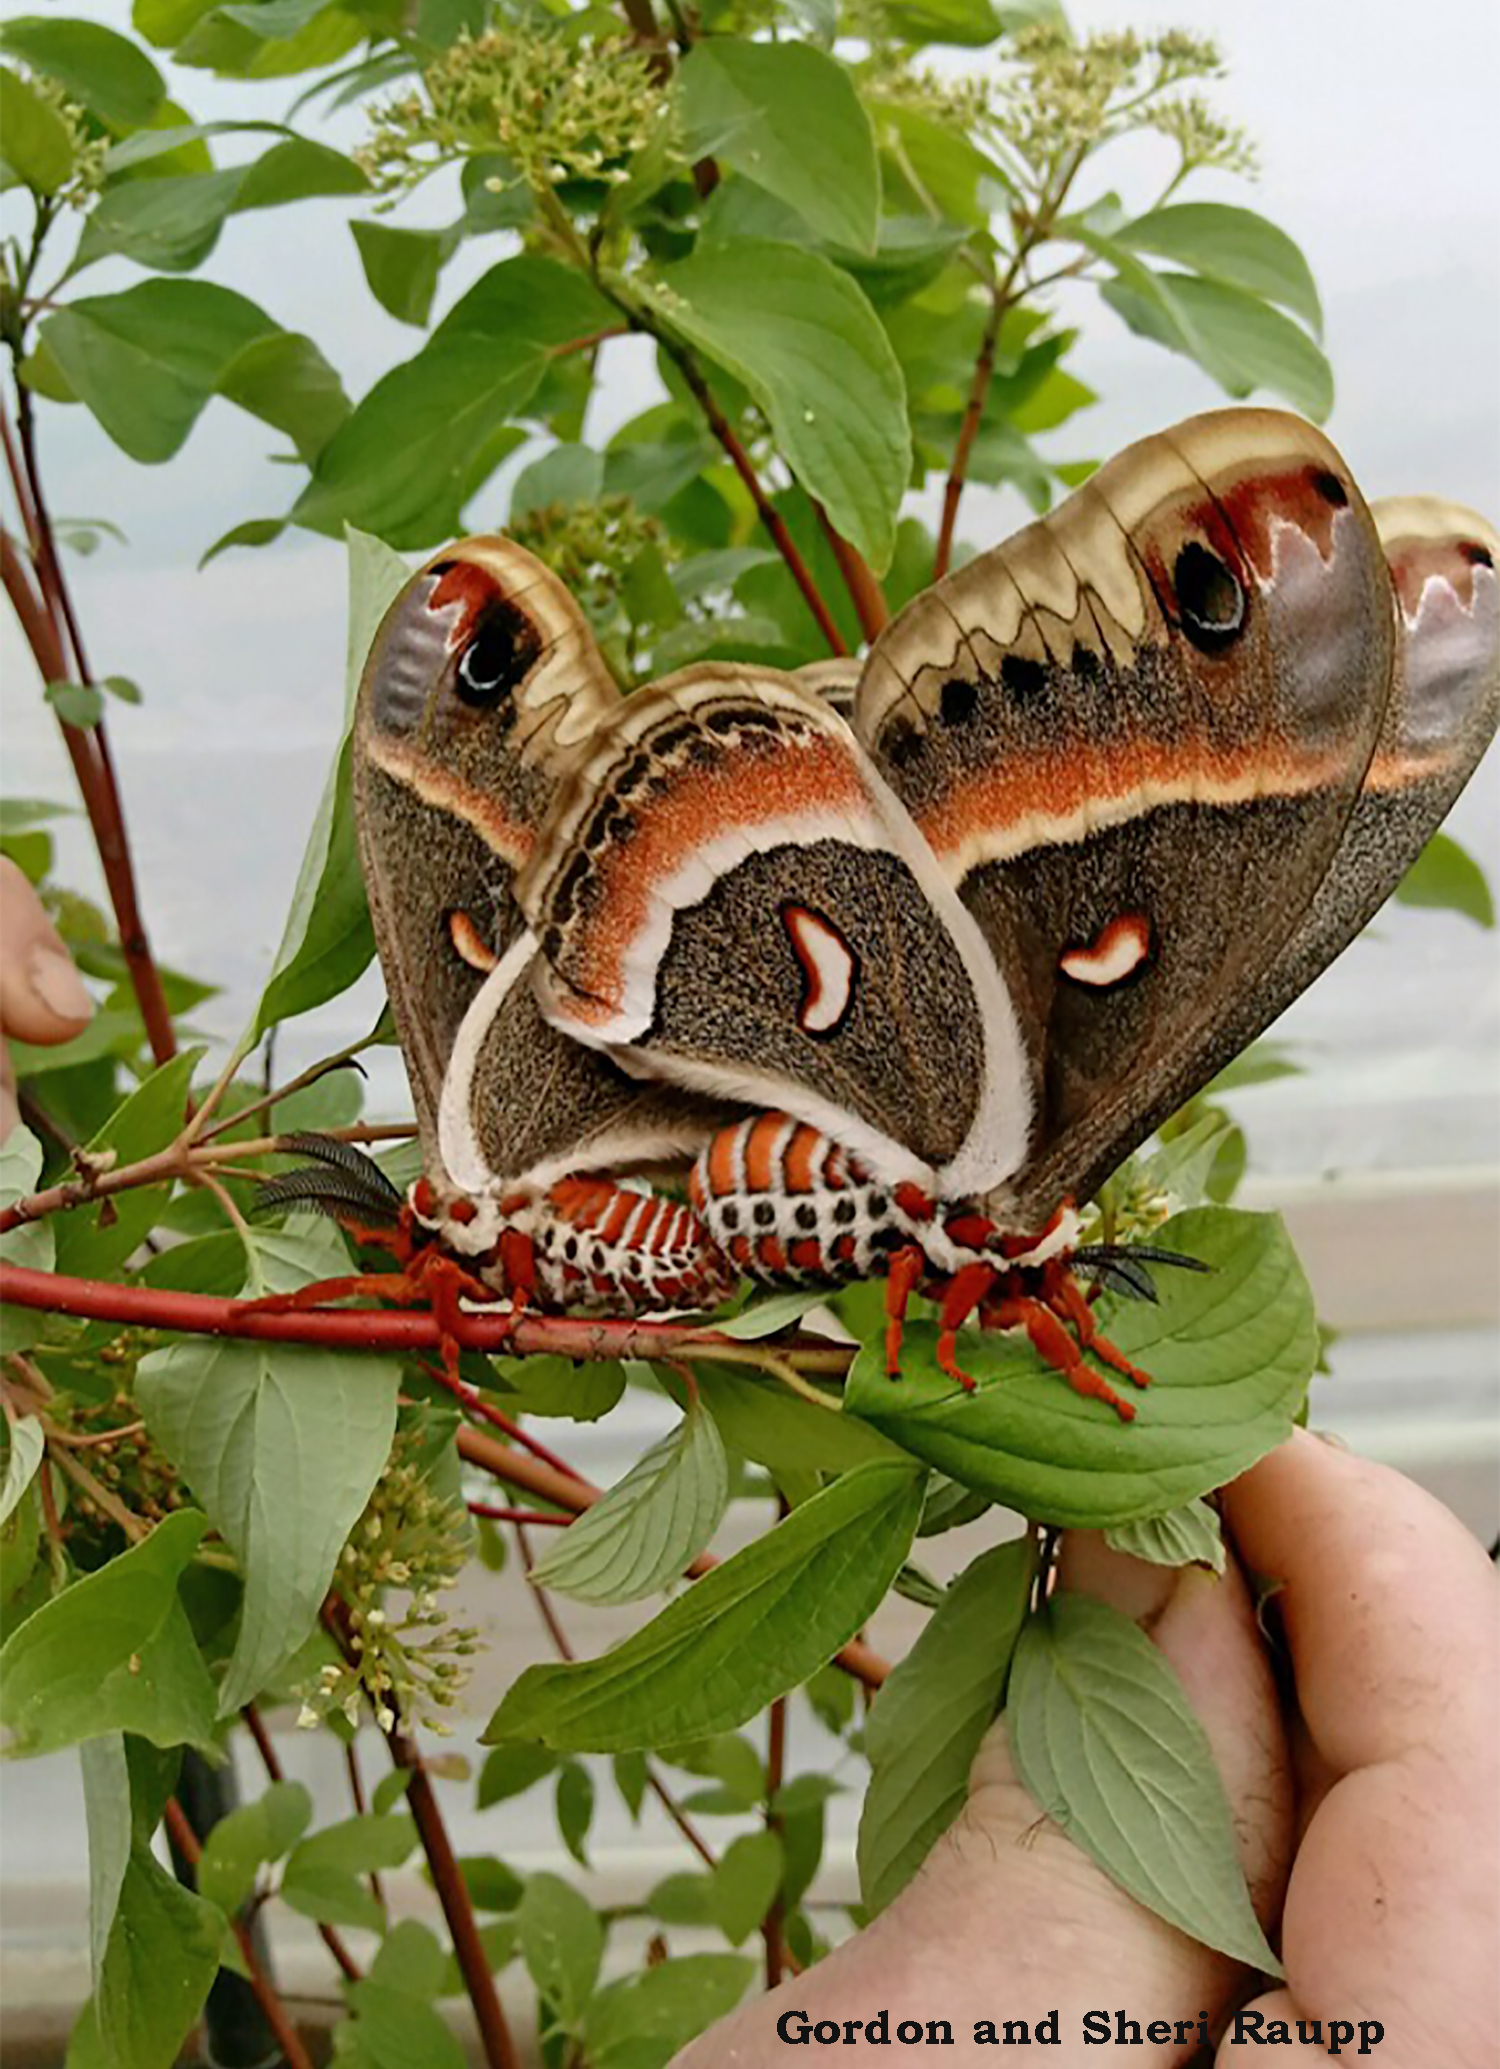 This mating pair was discovered in April on a viburnum at a nursery in New Jersey. Photo credit: Gordon and Sheri Raupp